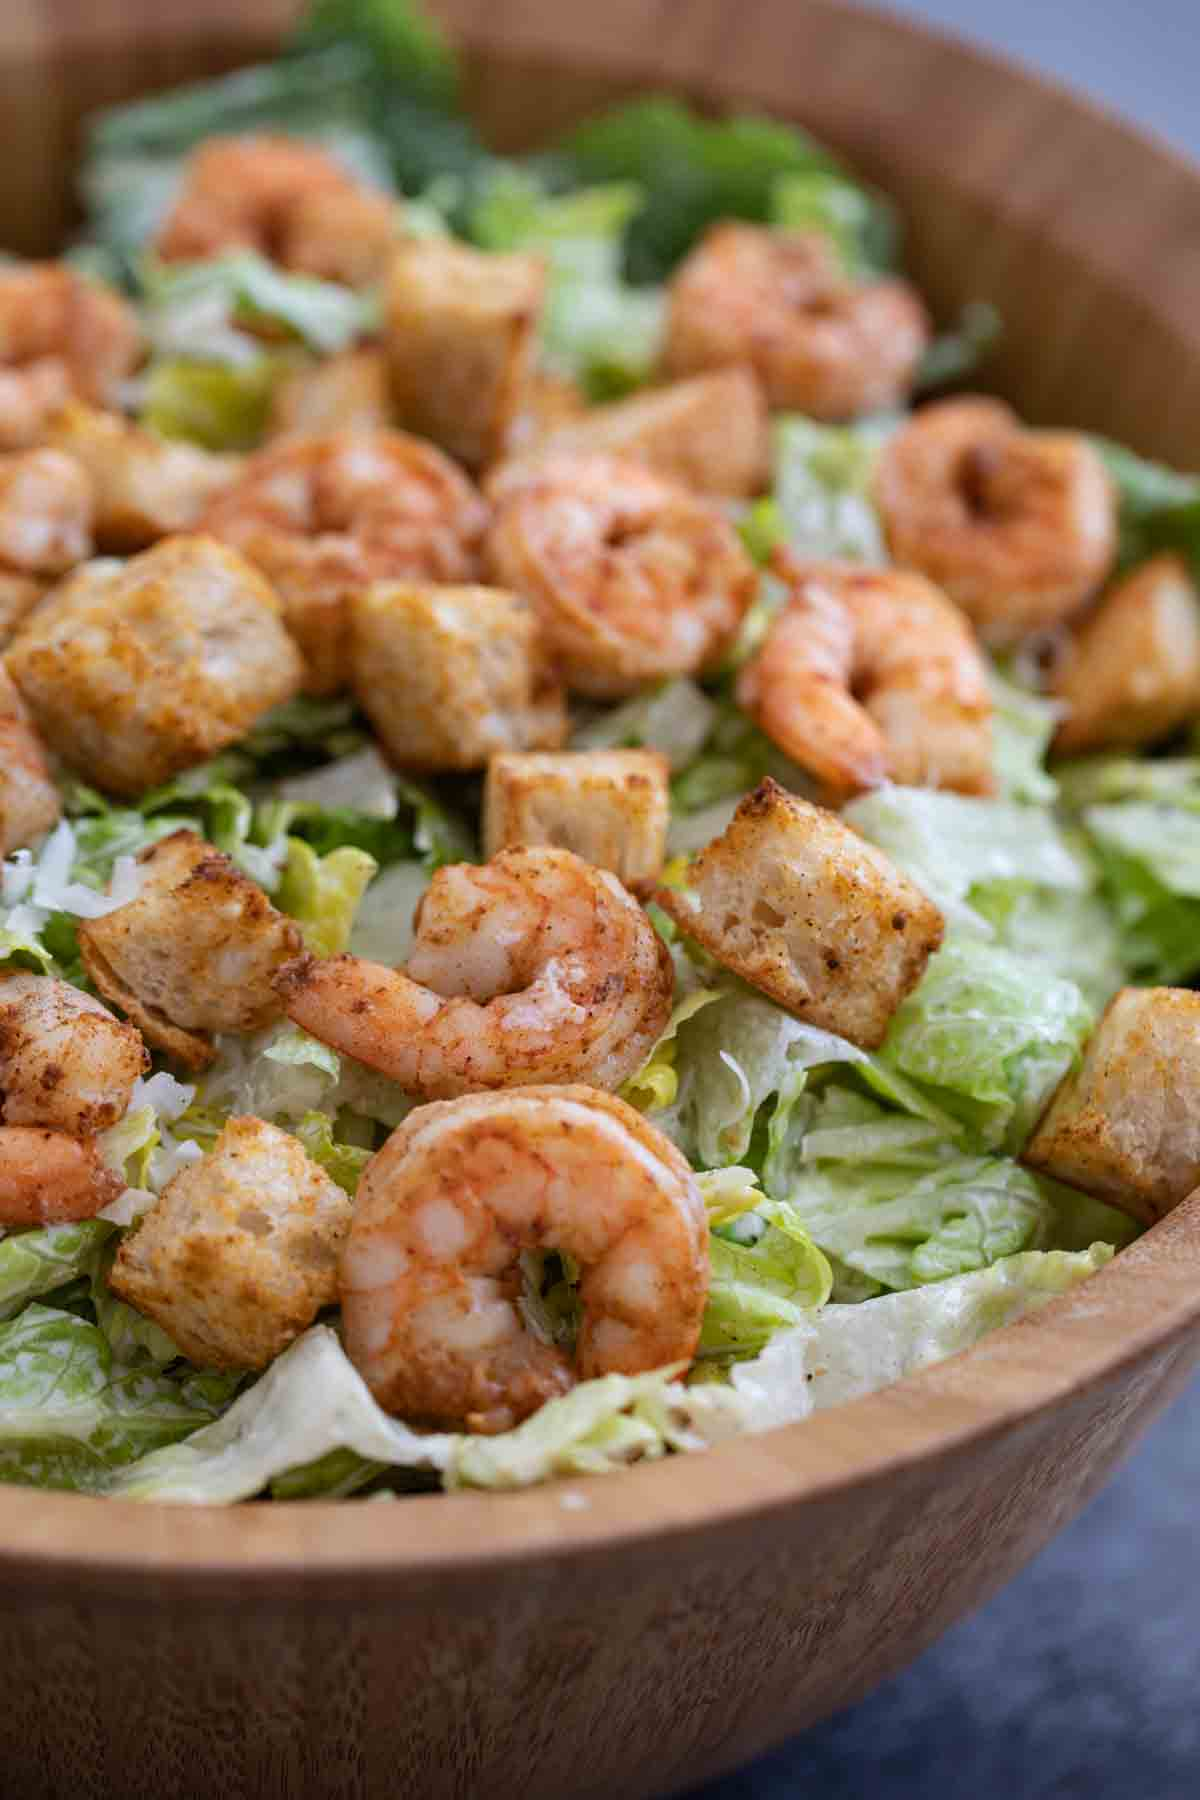 prepared Caesar salad with spicy shrimp and homemade croutons